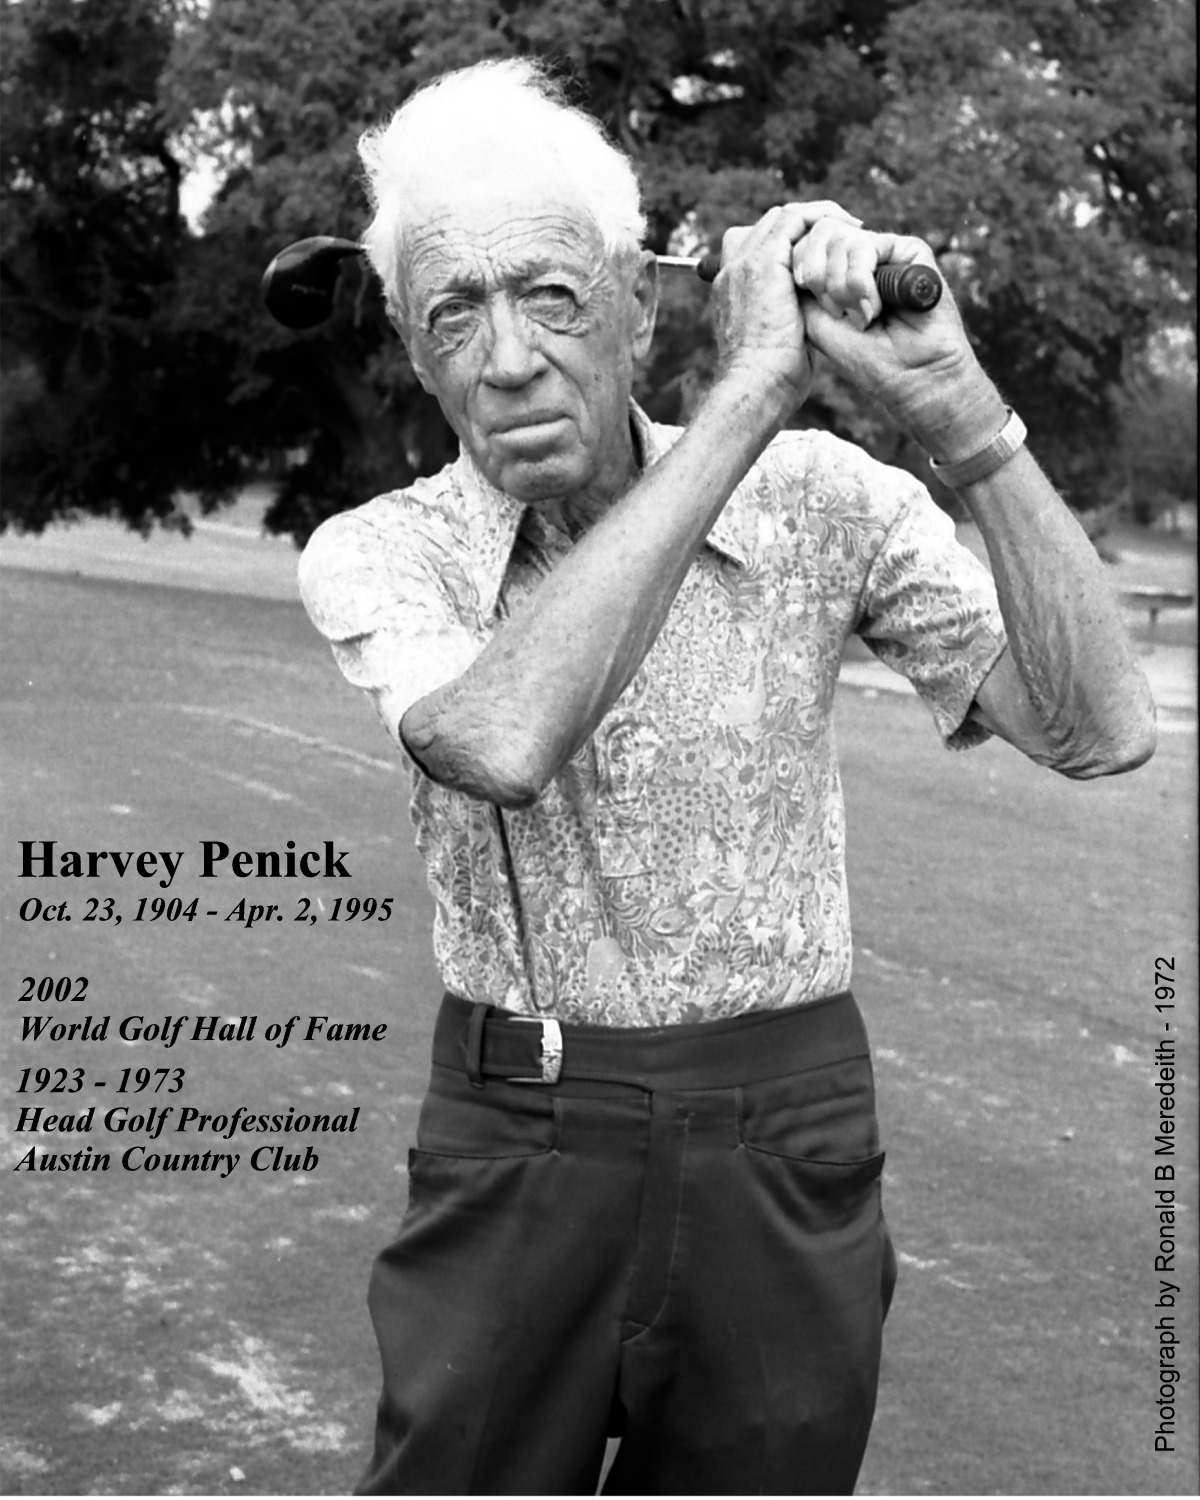 Harvey Penick's Magic Moves of Golf - YouTube